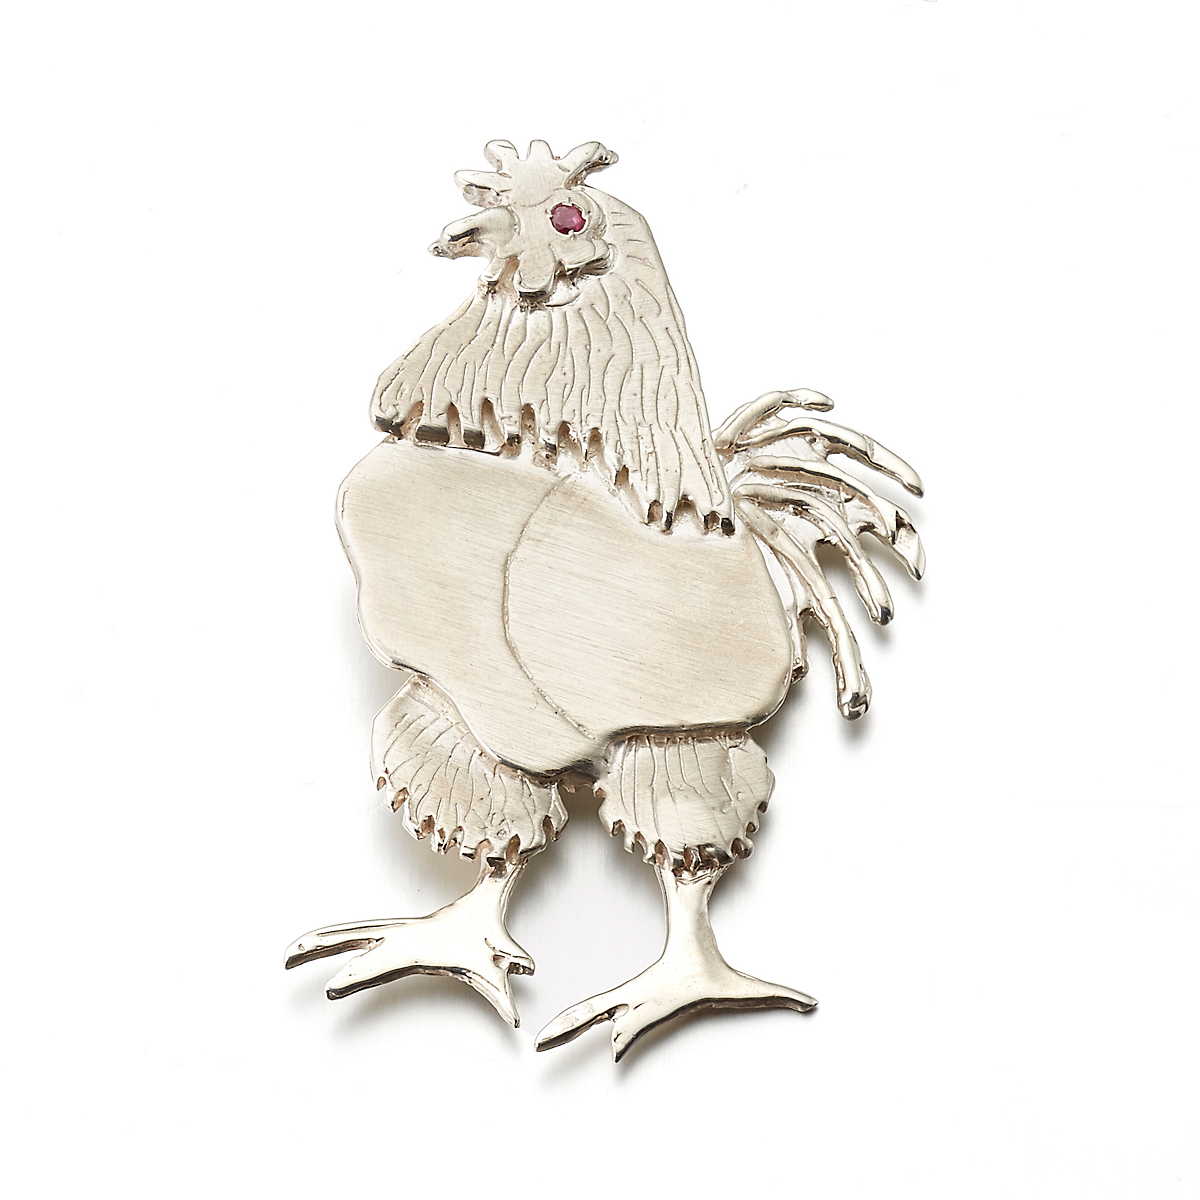 Mia Fonssagrives-Solow Sterling Silver Standing Rooster With Ruby Brooch